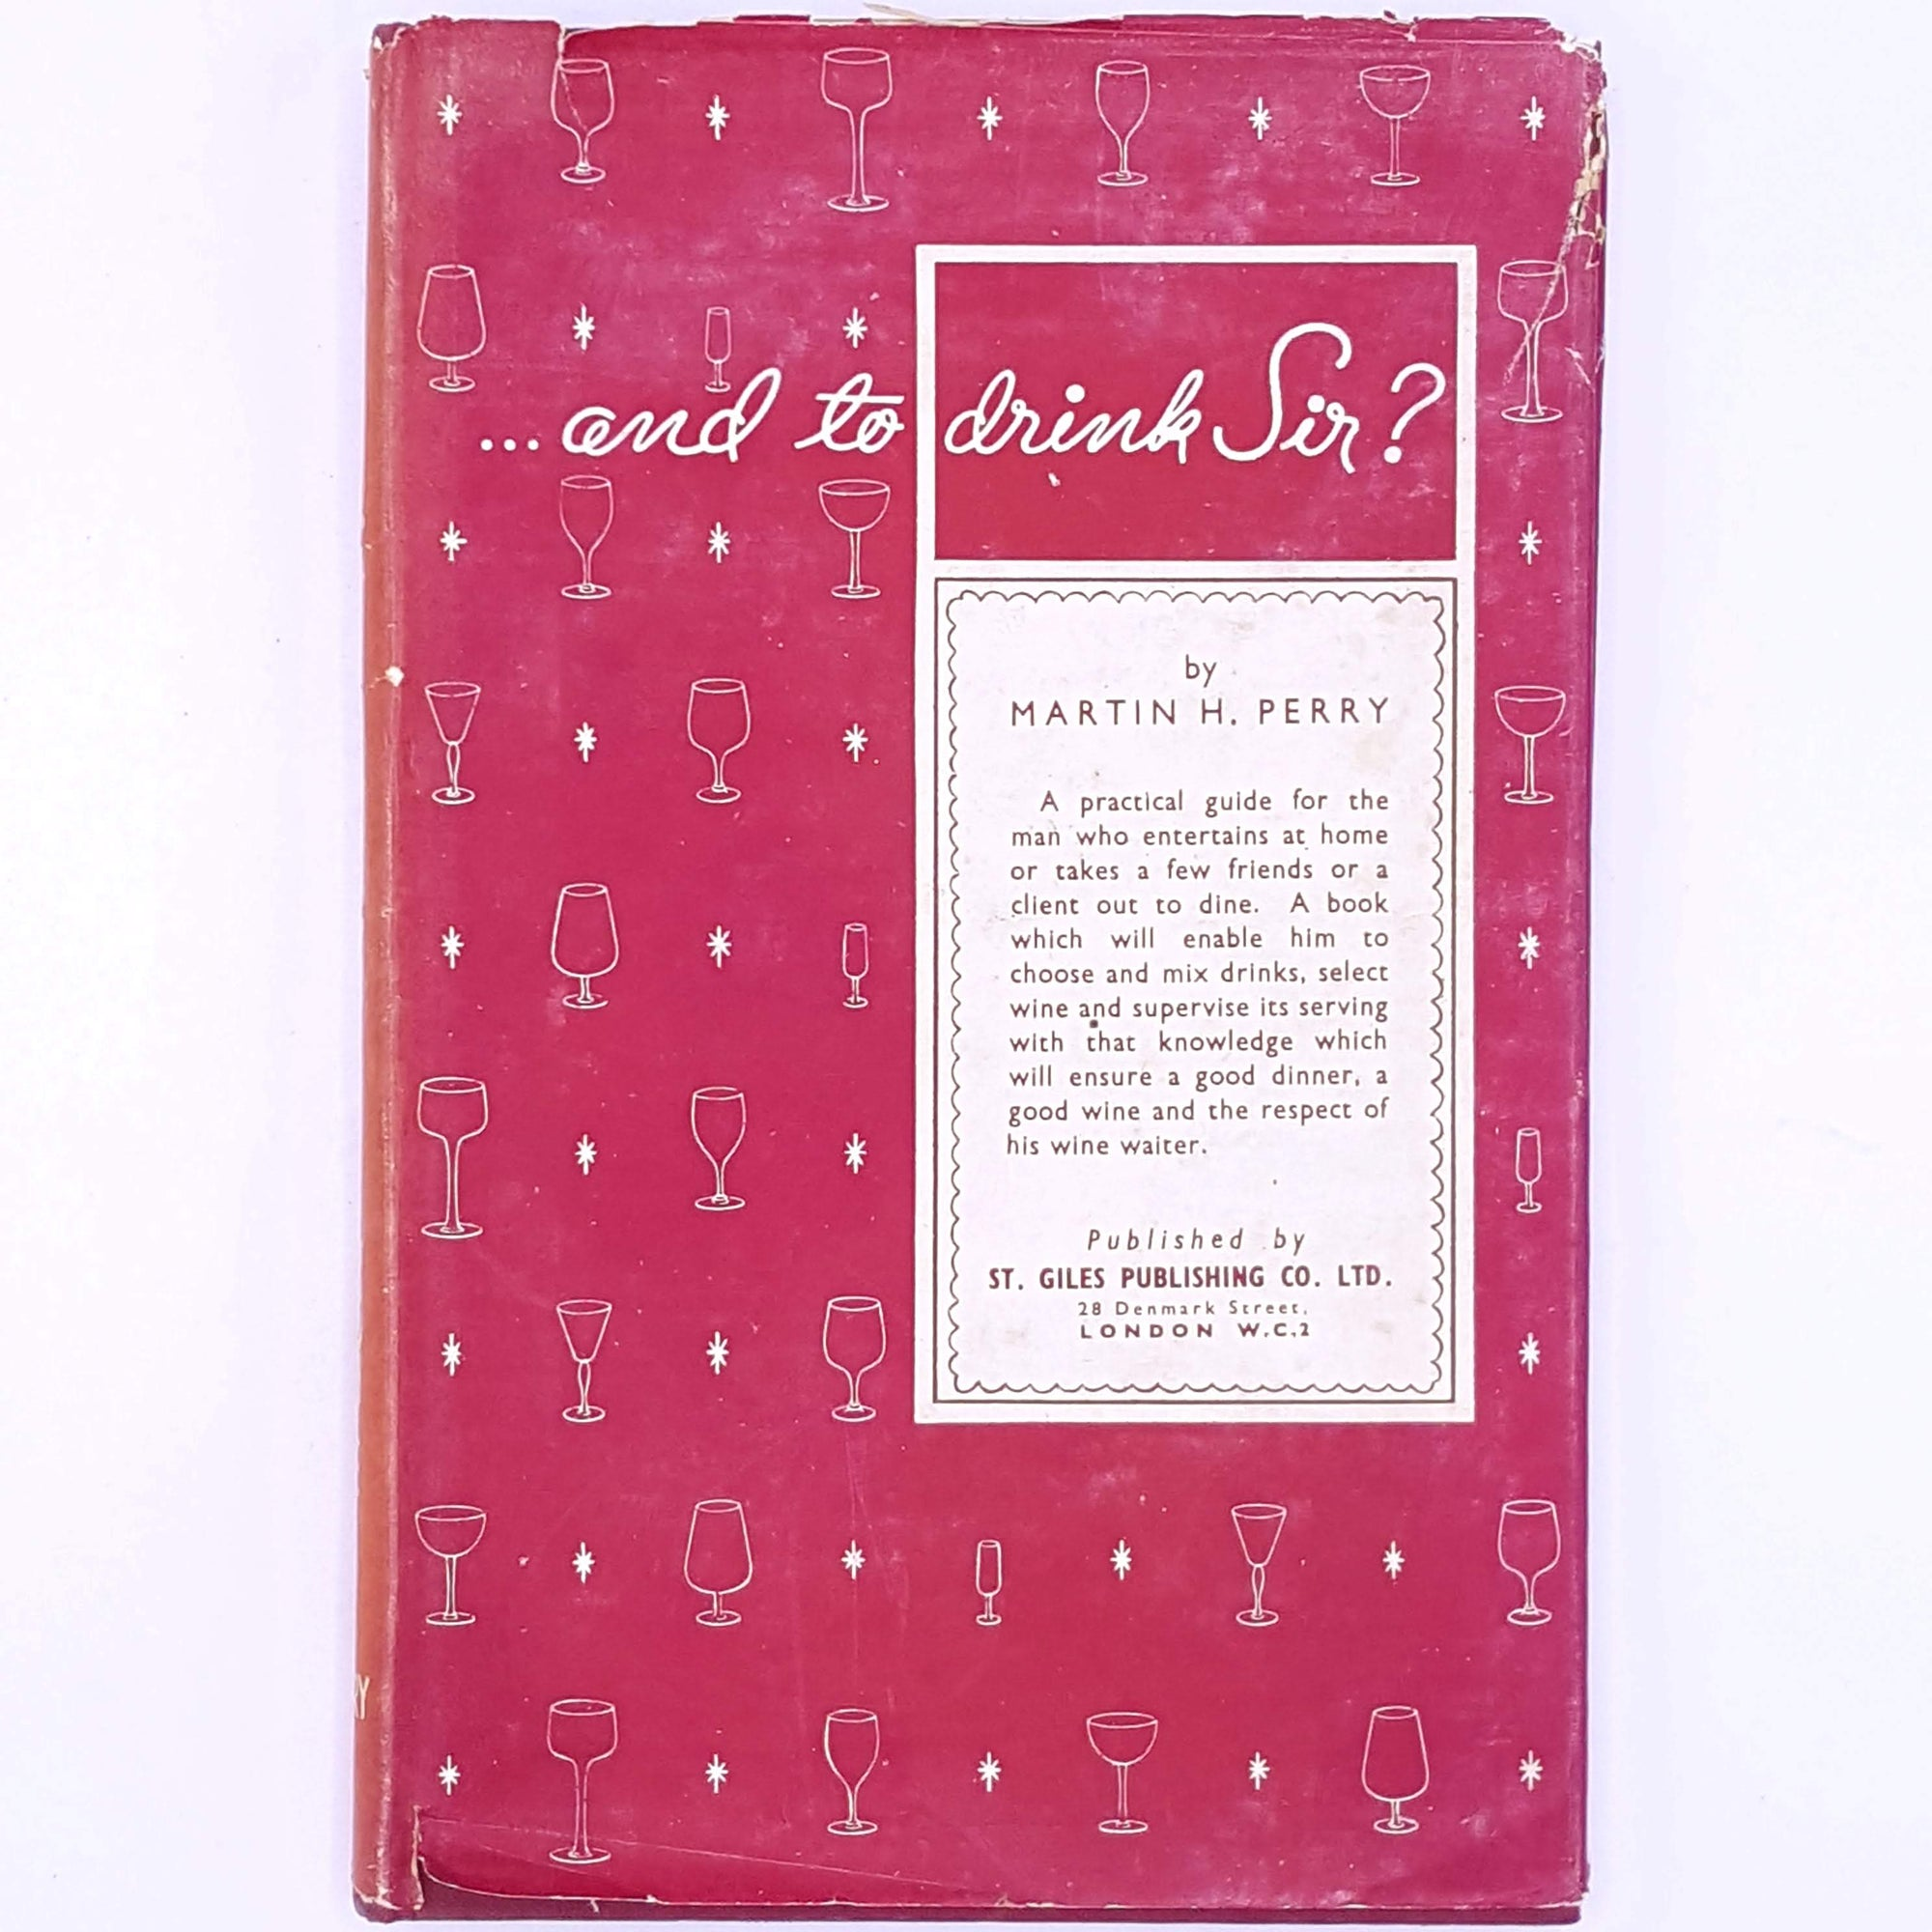 patterned-Martin-H-Perry-books-country-house-library-drinks-for foodies-recipes-thrift-old-antique-and-to-drink-Sir-cooking-baking-alcohol-decorative-cookbooks-vintage-christmas gifts-classic-